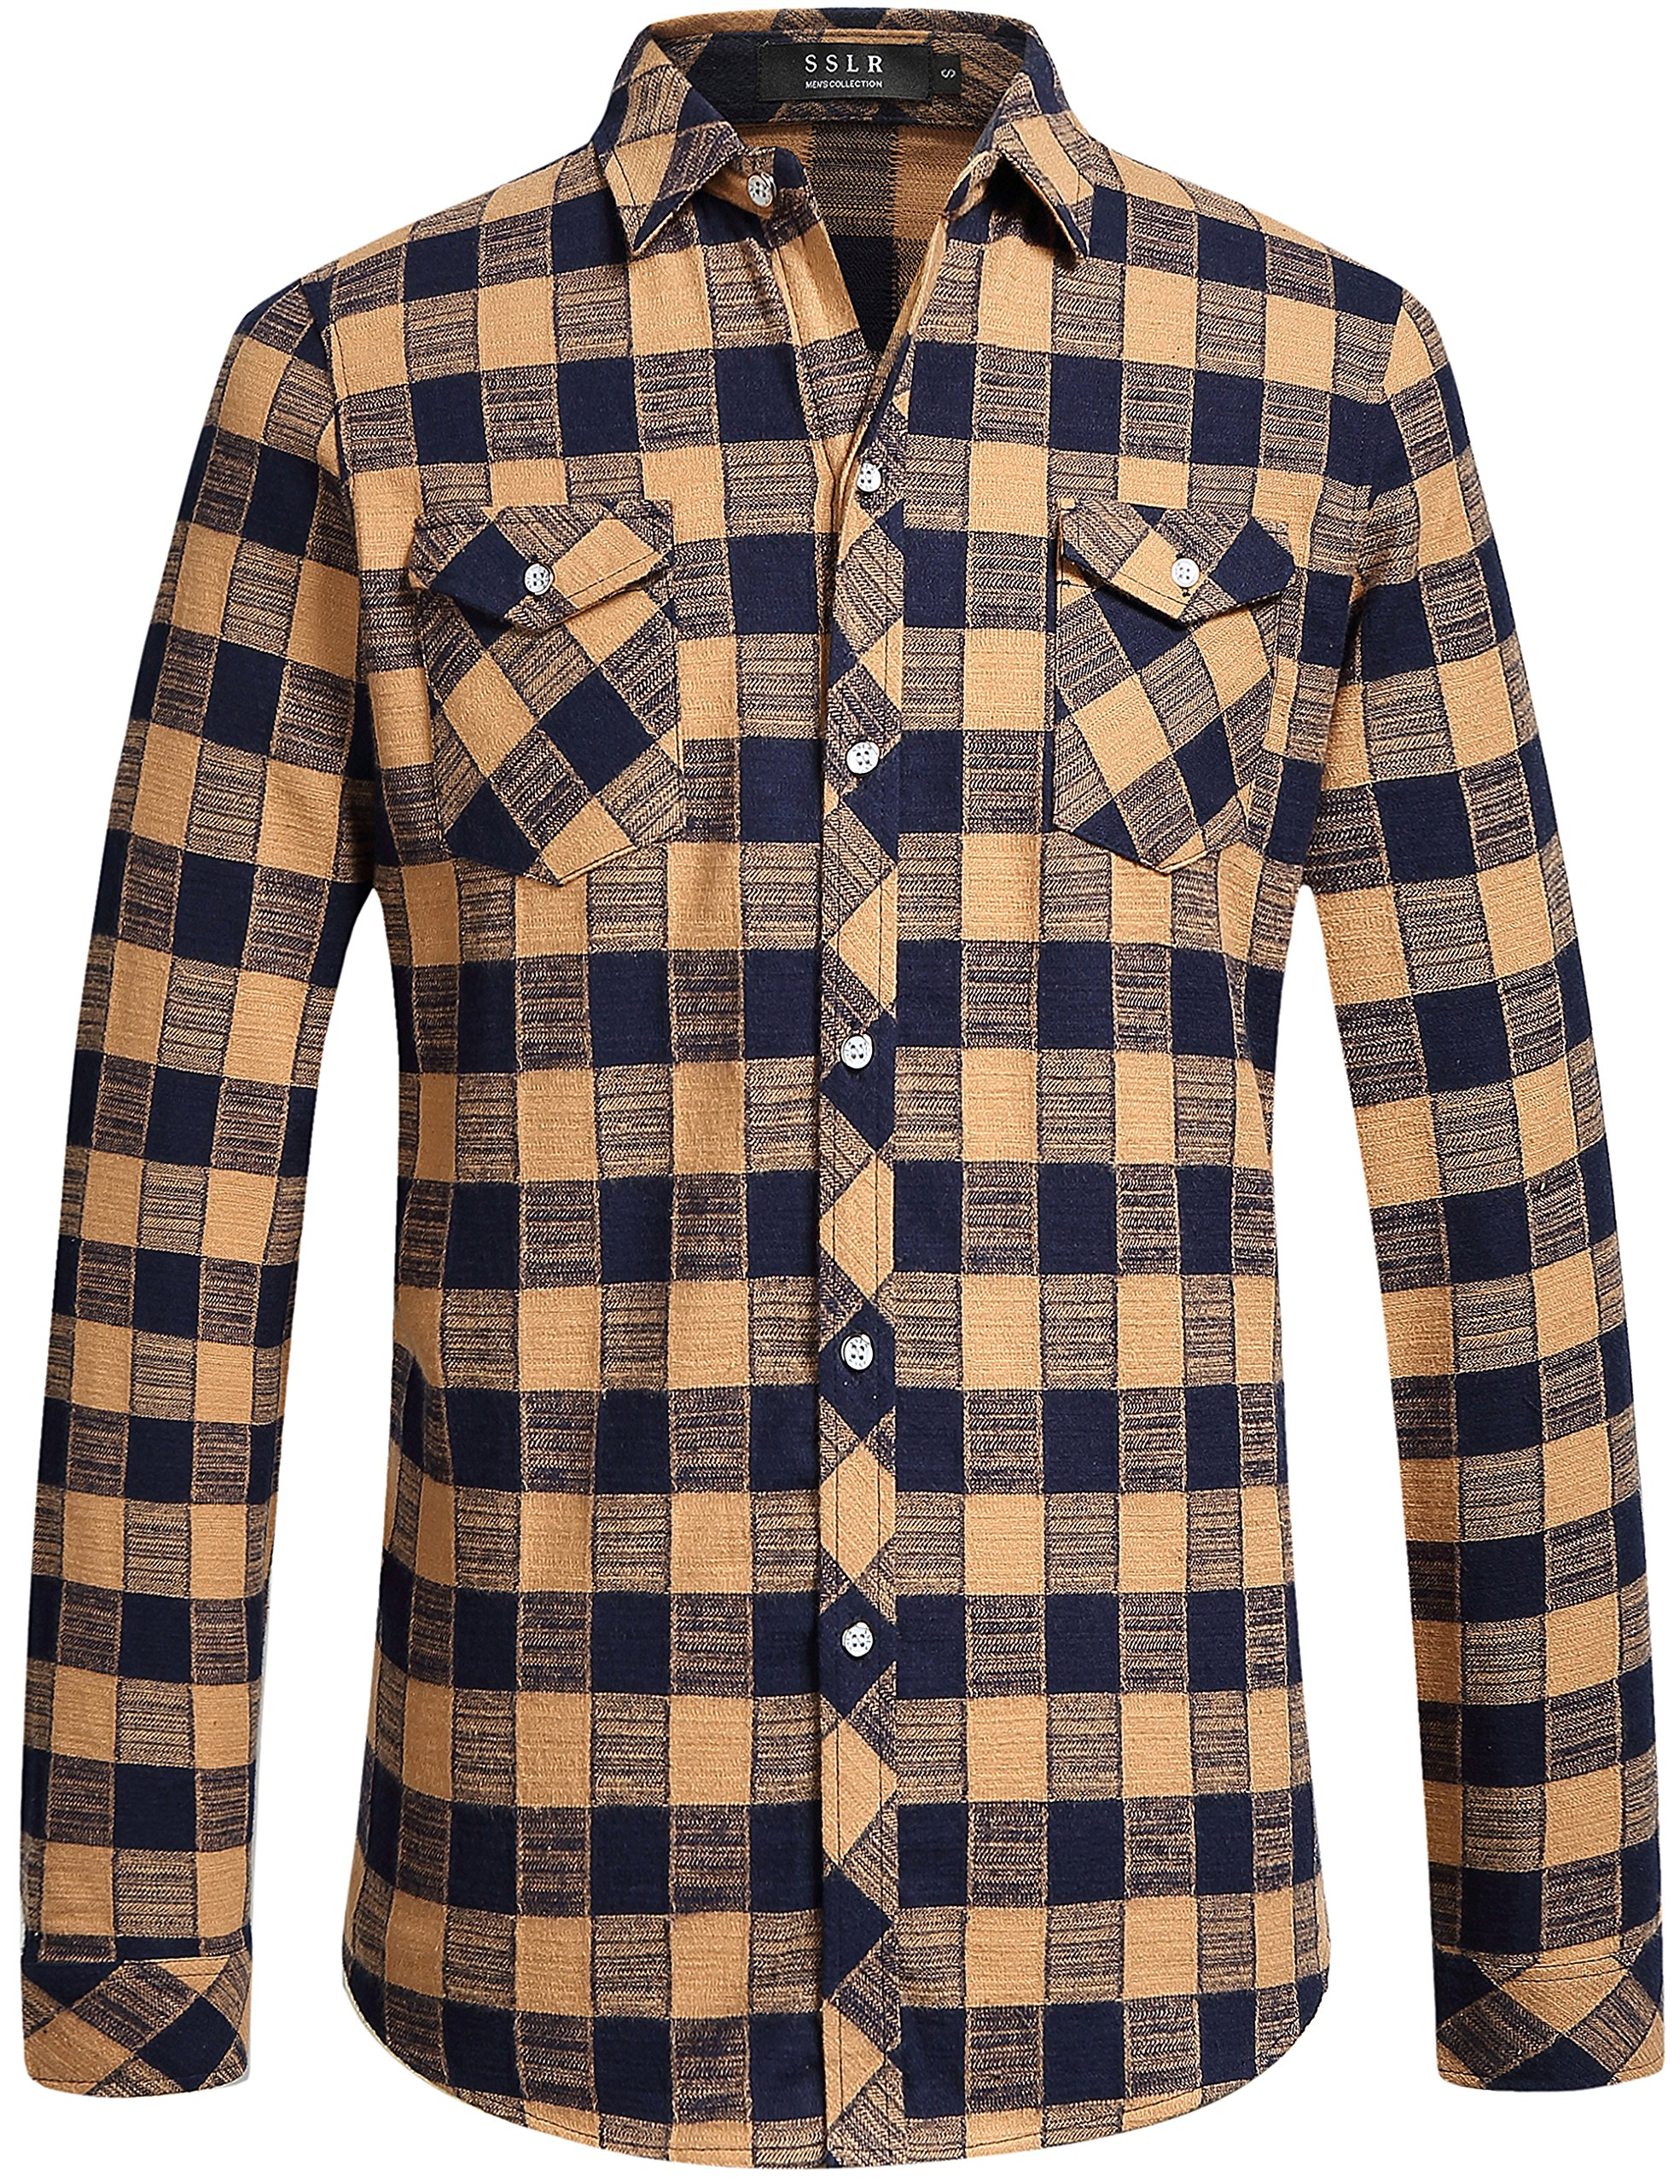 Sslr men 39 s gingham flannel vintage long sleeve shirt for Places to buy flannel shirts